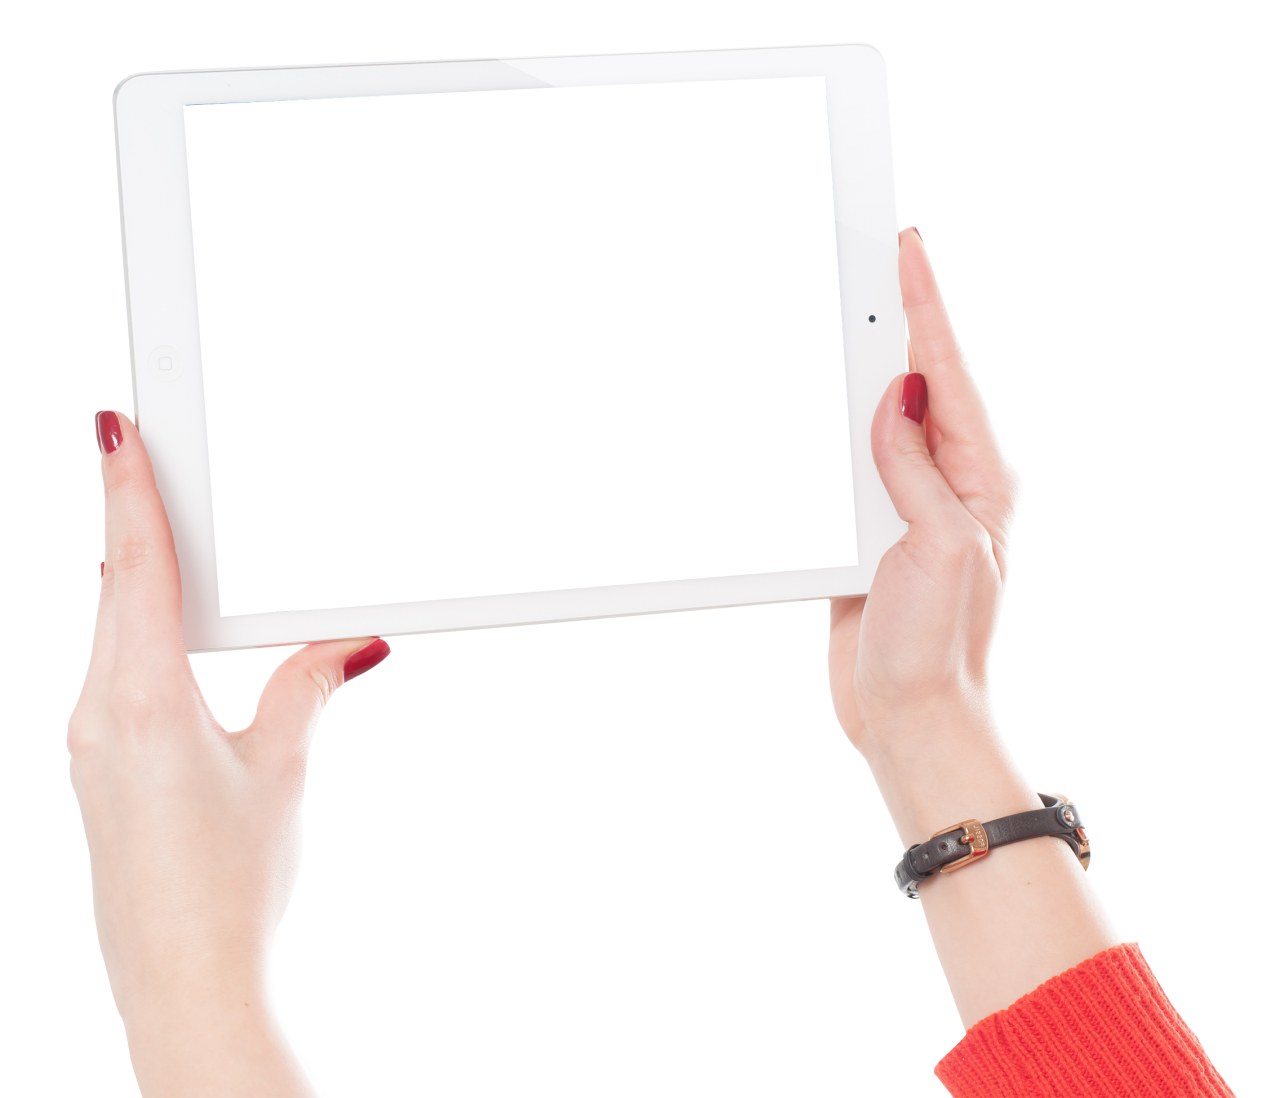 Ipad Hand Png - Woman Hands Holding iPad PNG Image - PurePNG   Free transparent ...